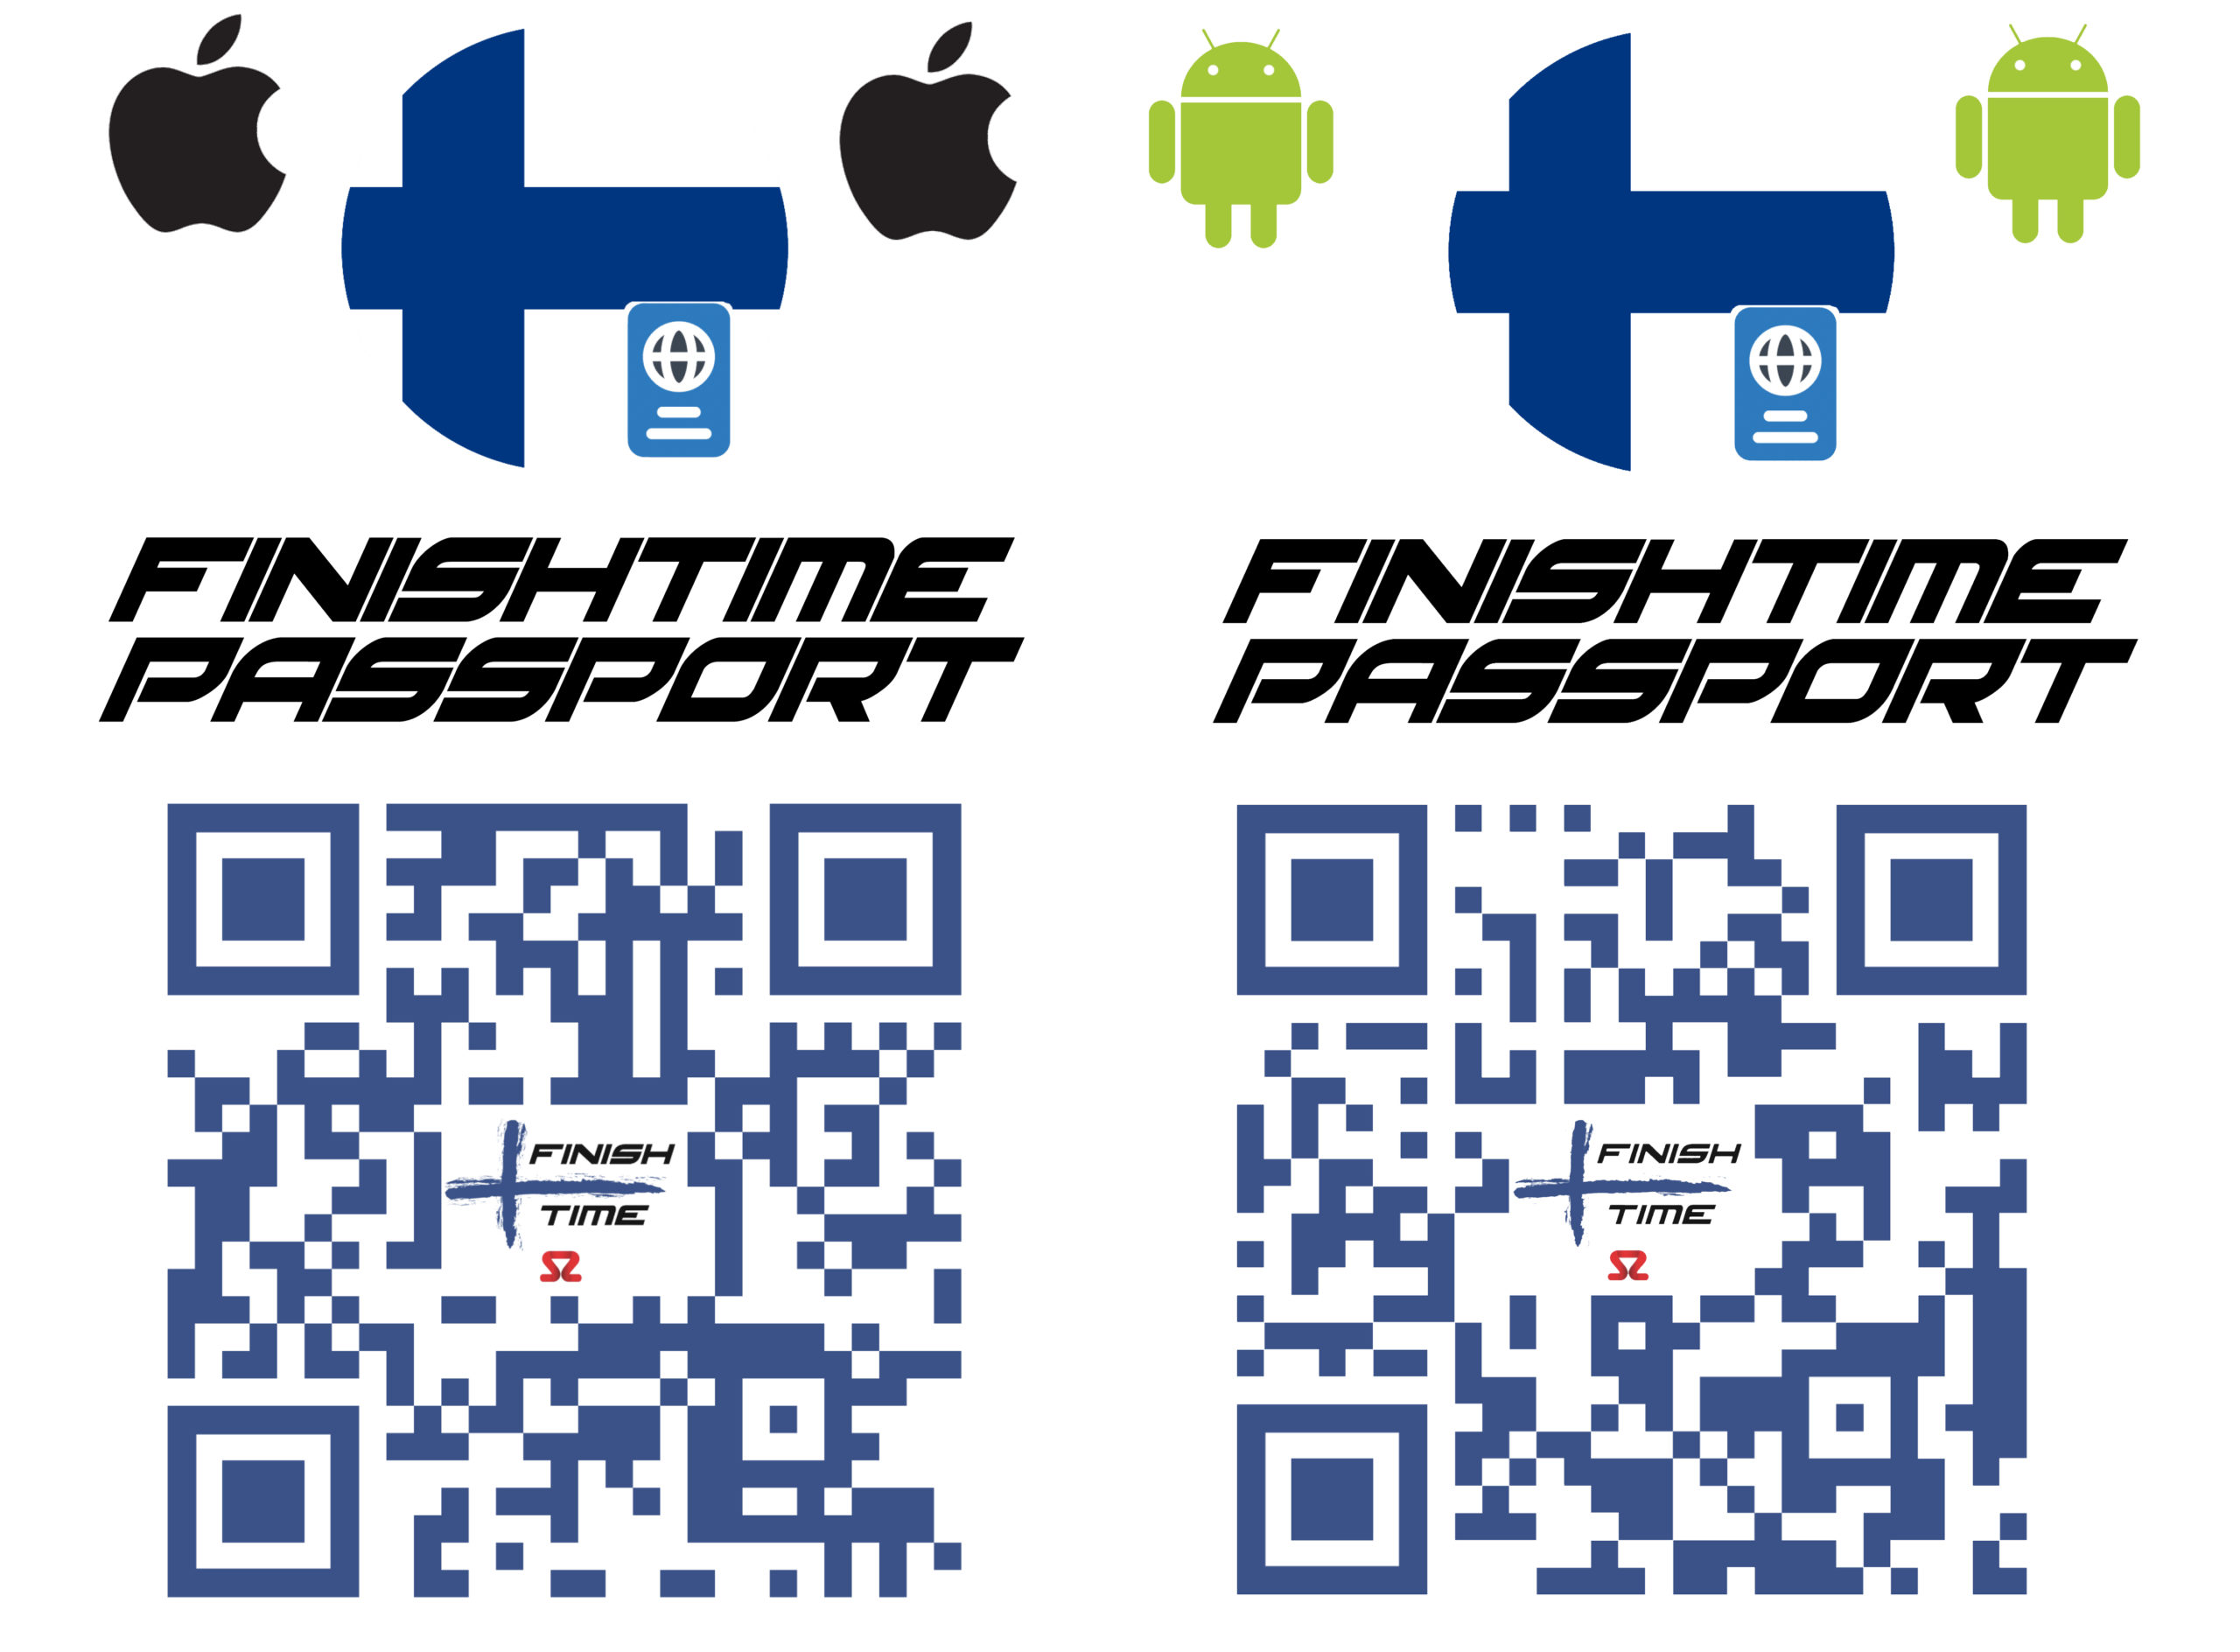 Finish Time Passport QR Codes